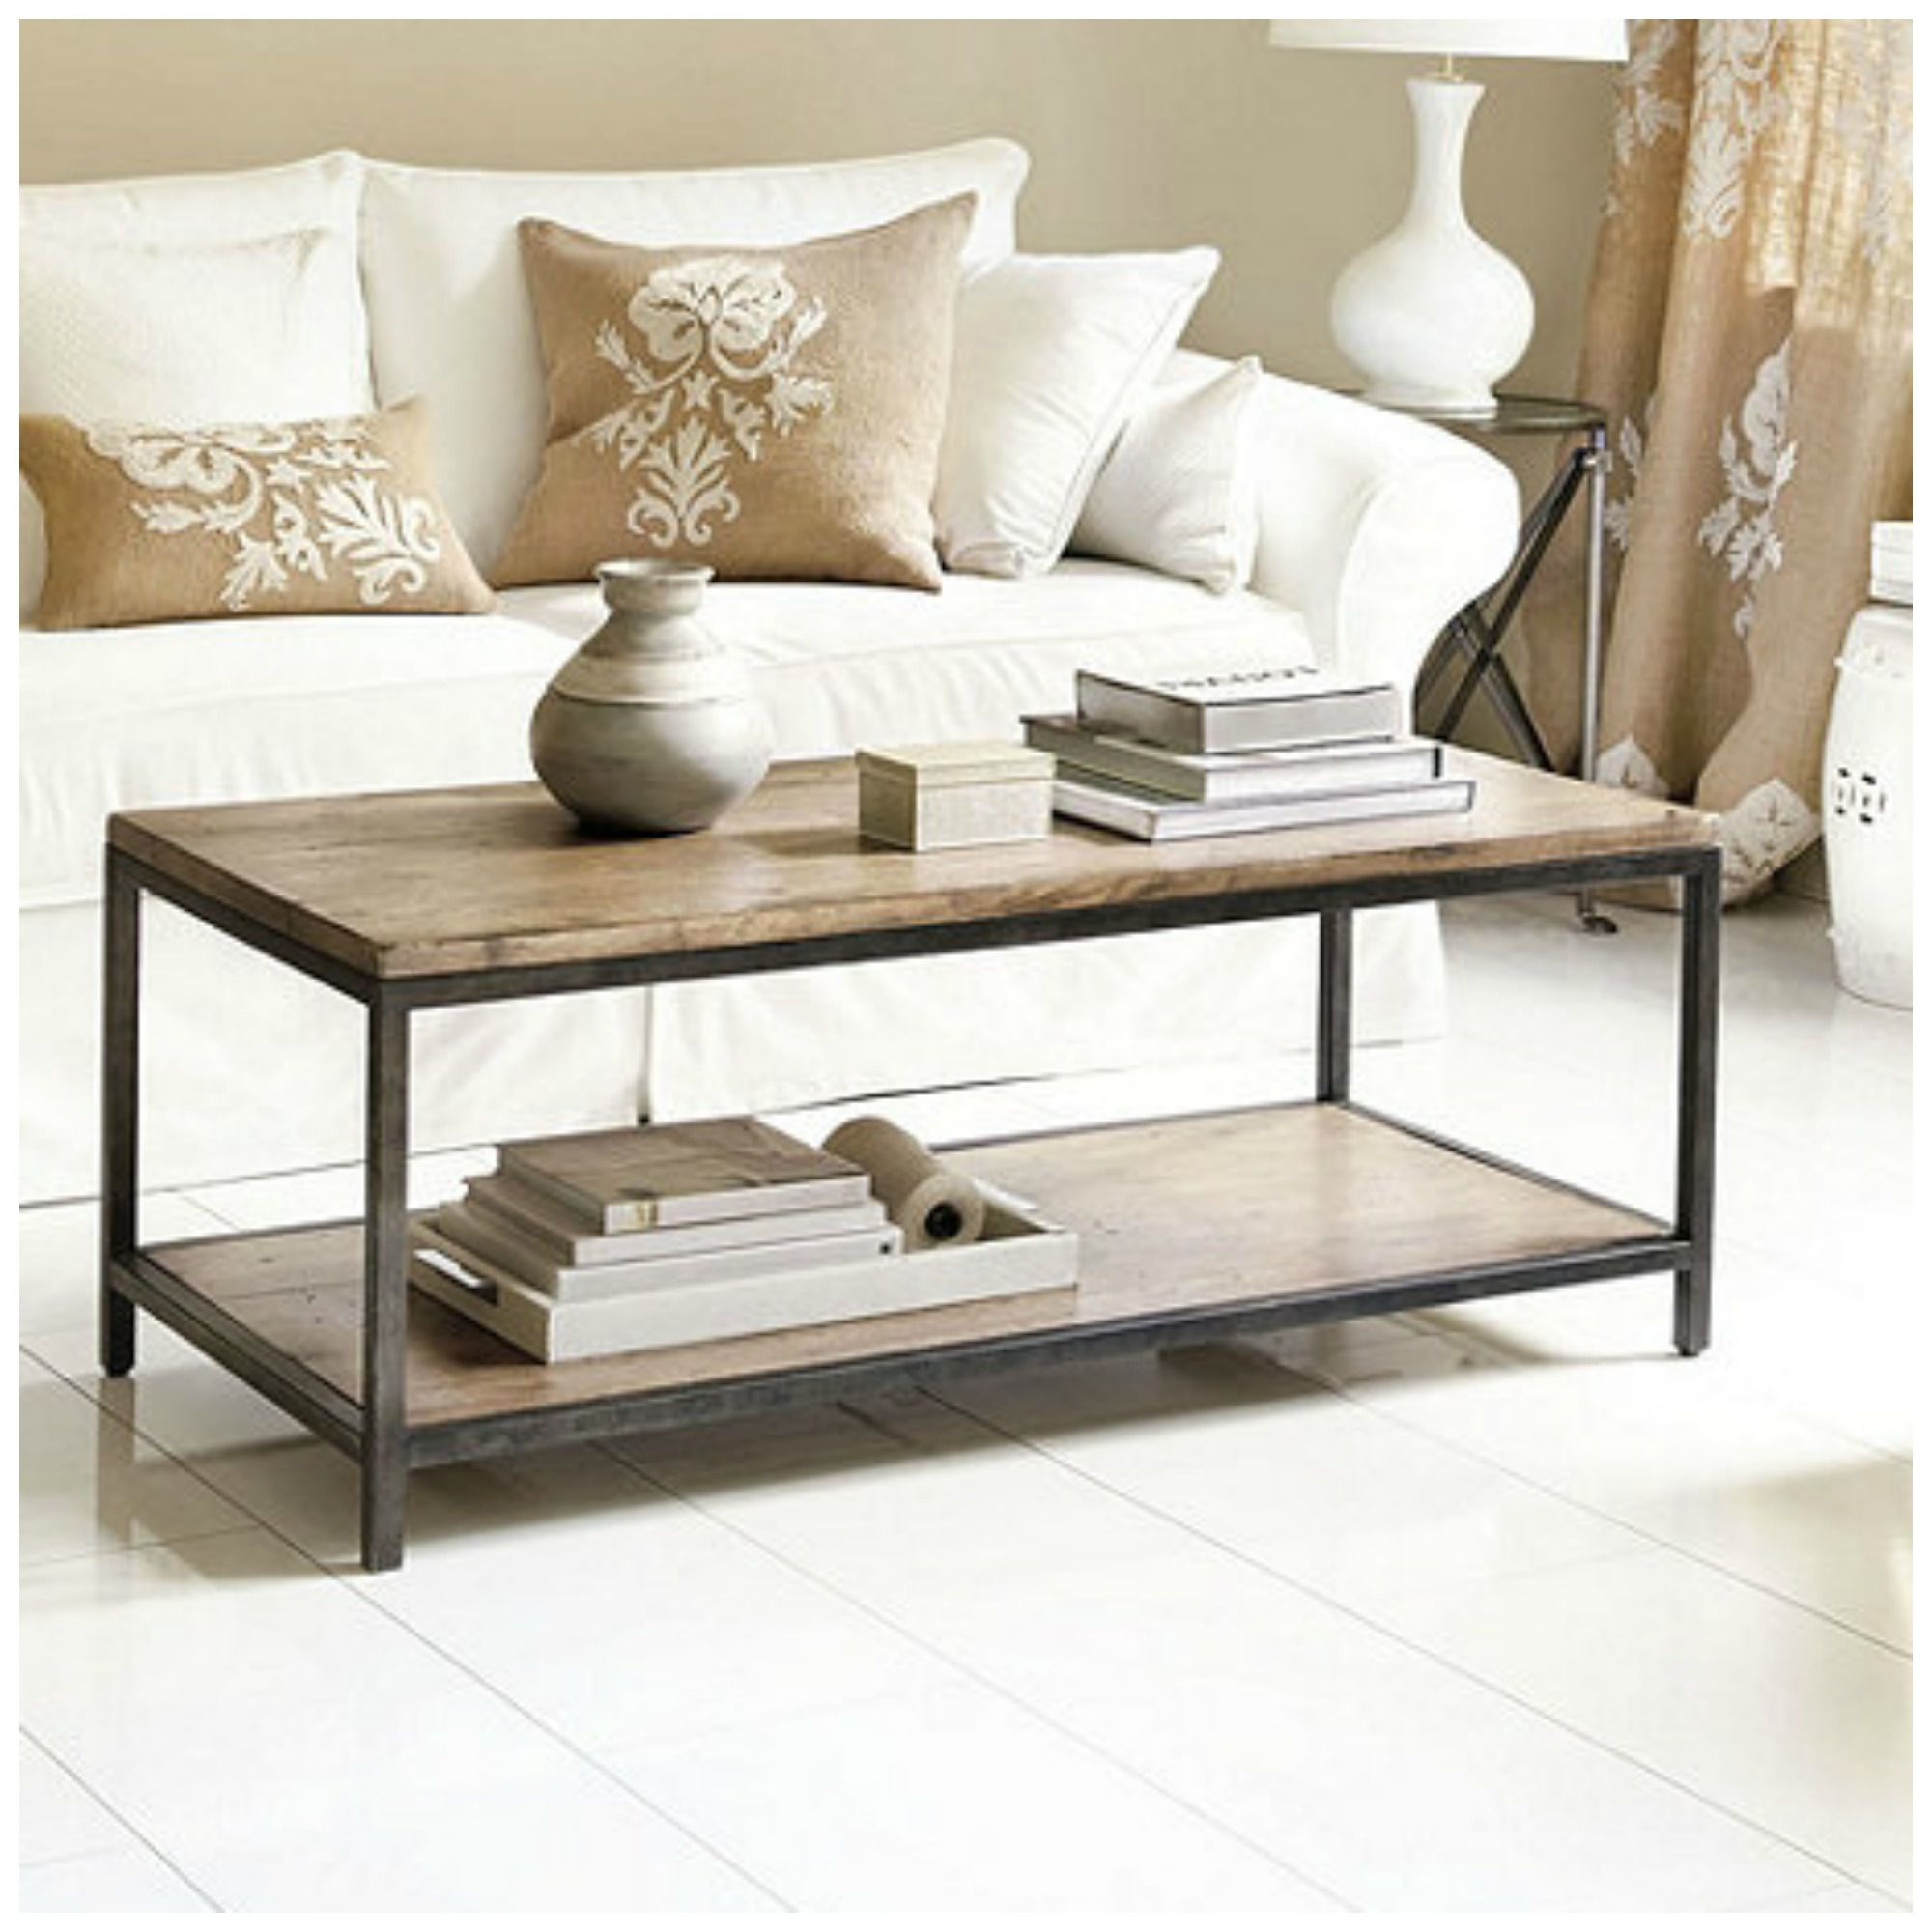 How To Buy A Coffee Table For Your Home